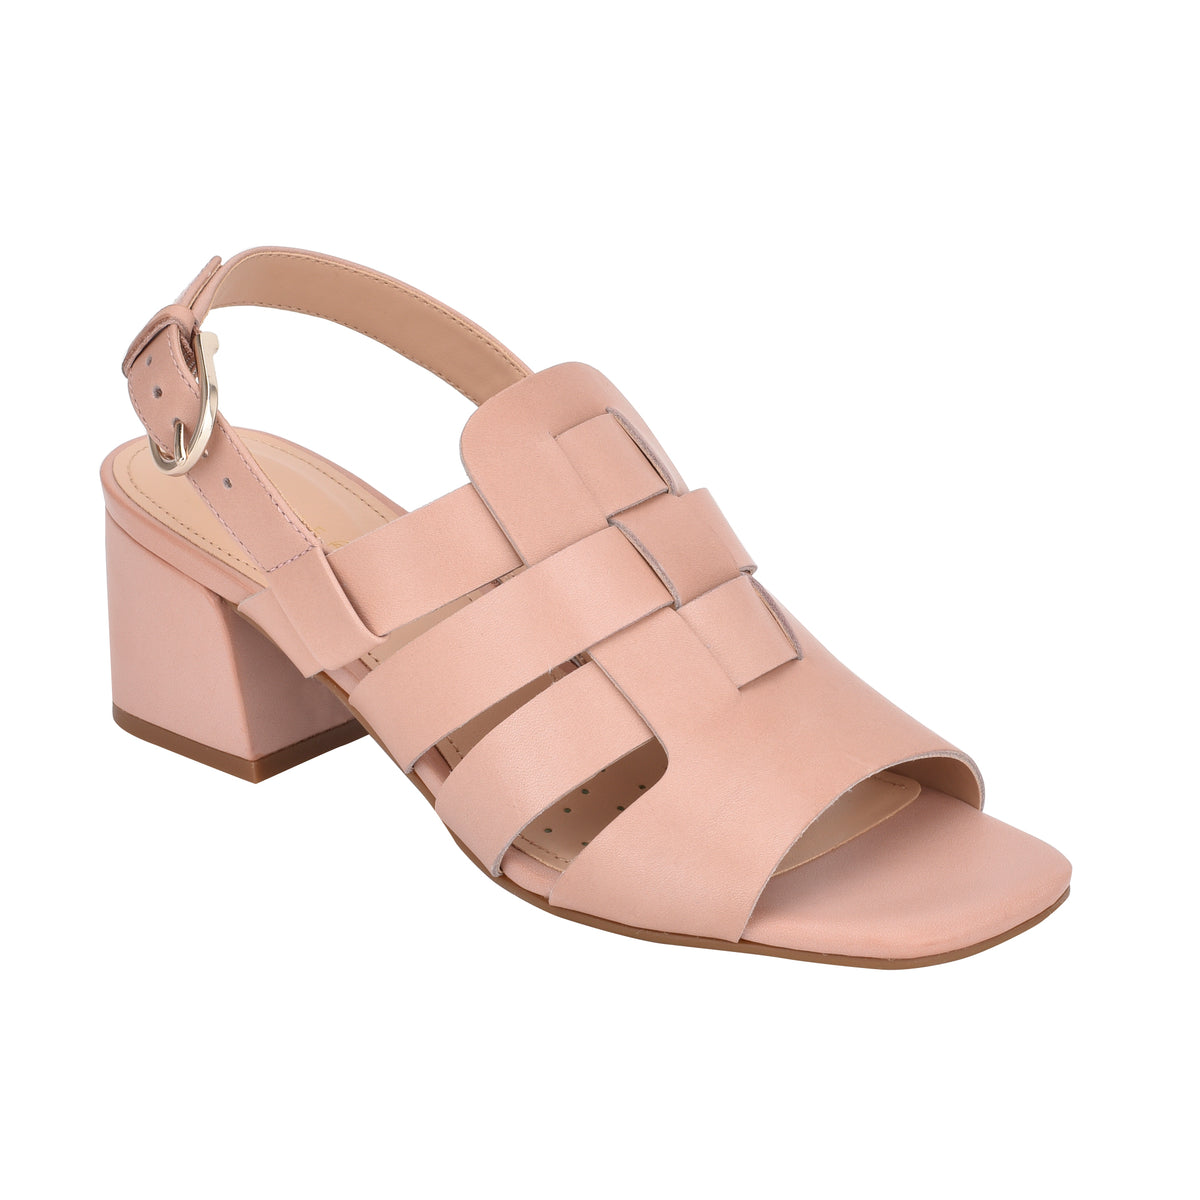 mona-slingback-heeled-sandals-in-pink-leather